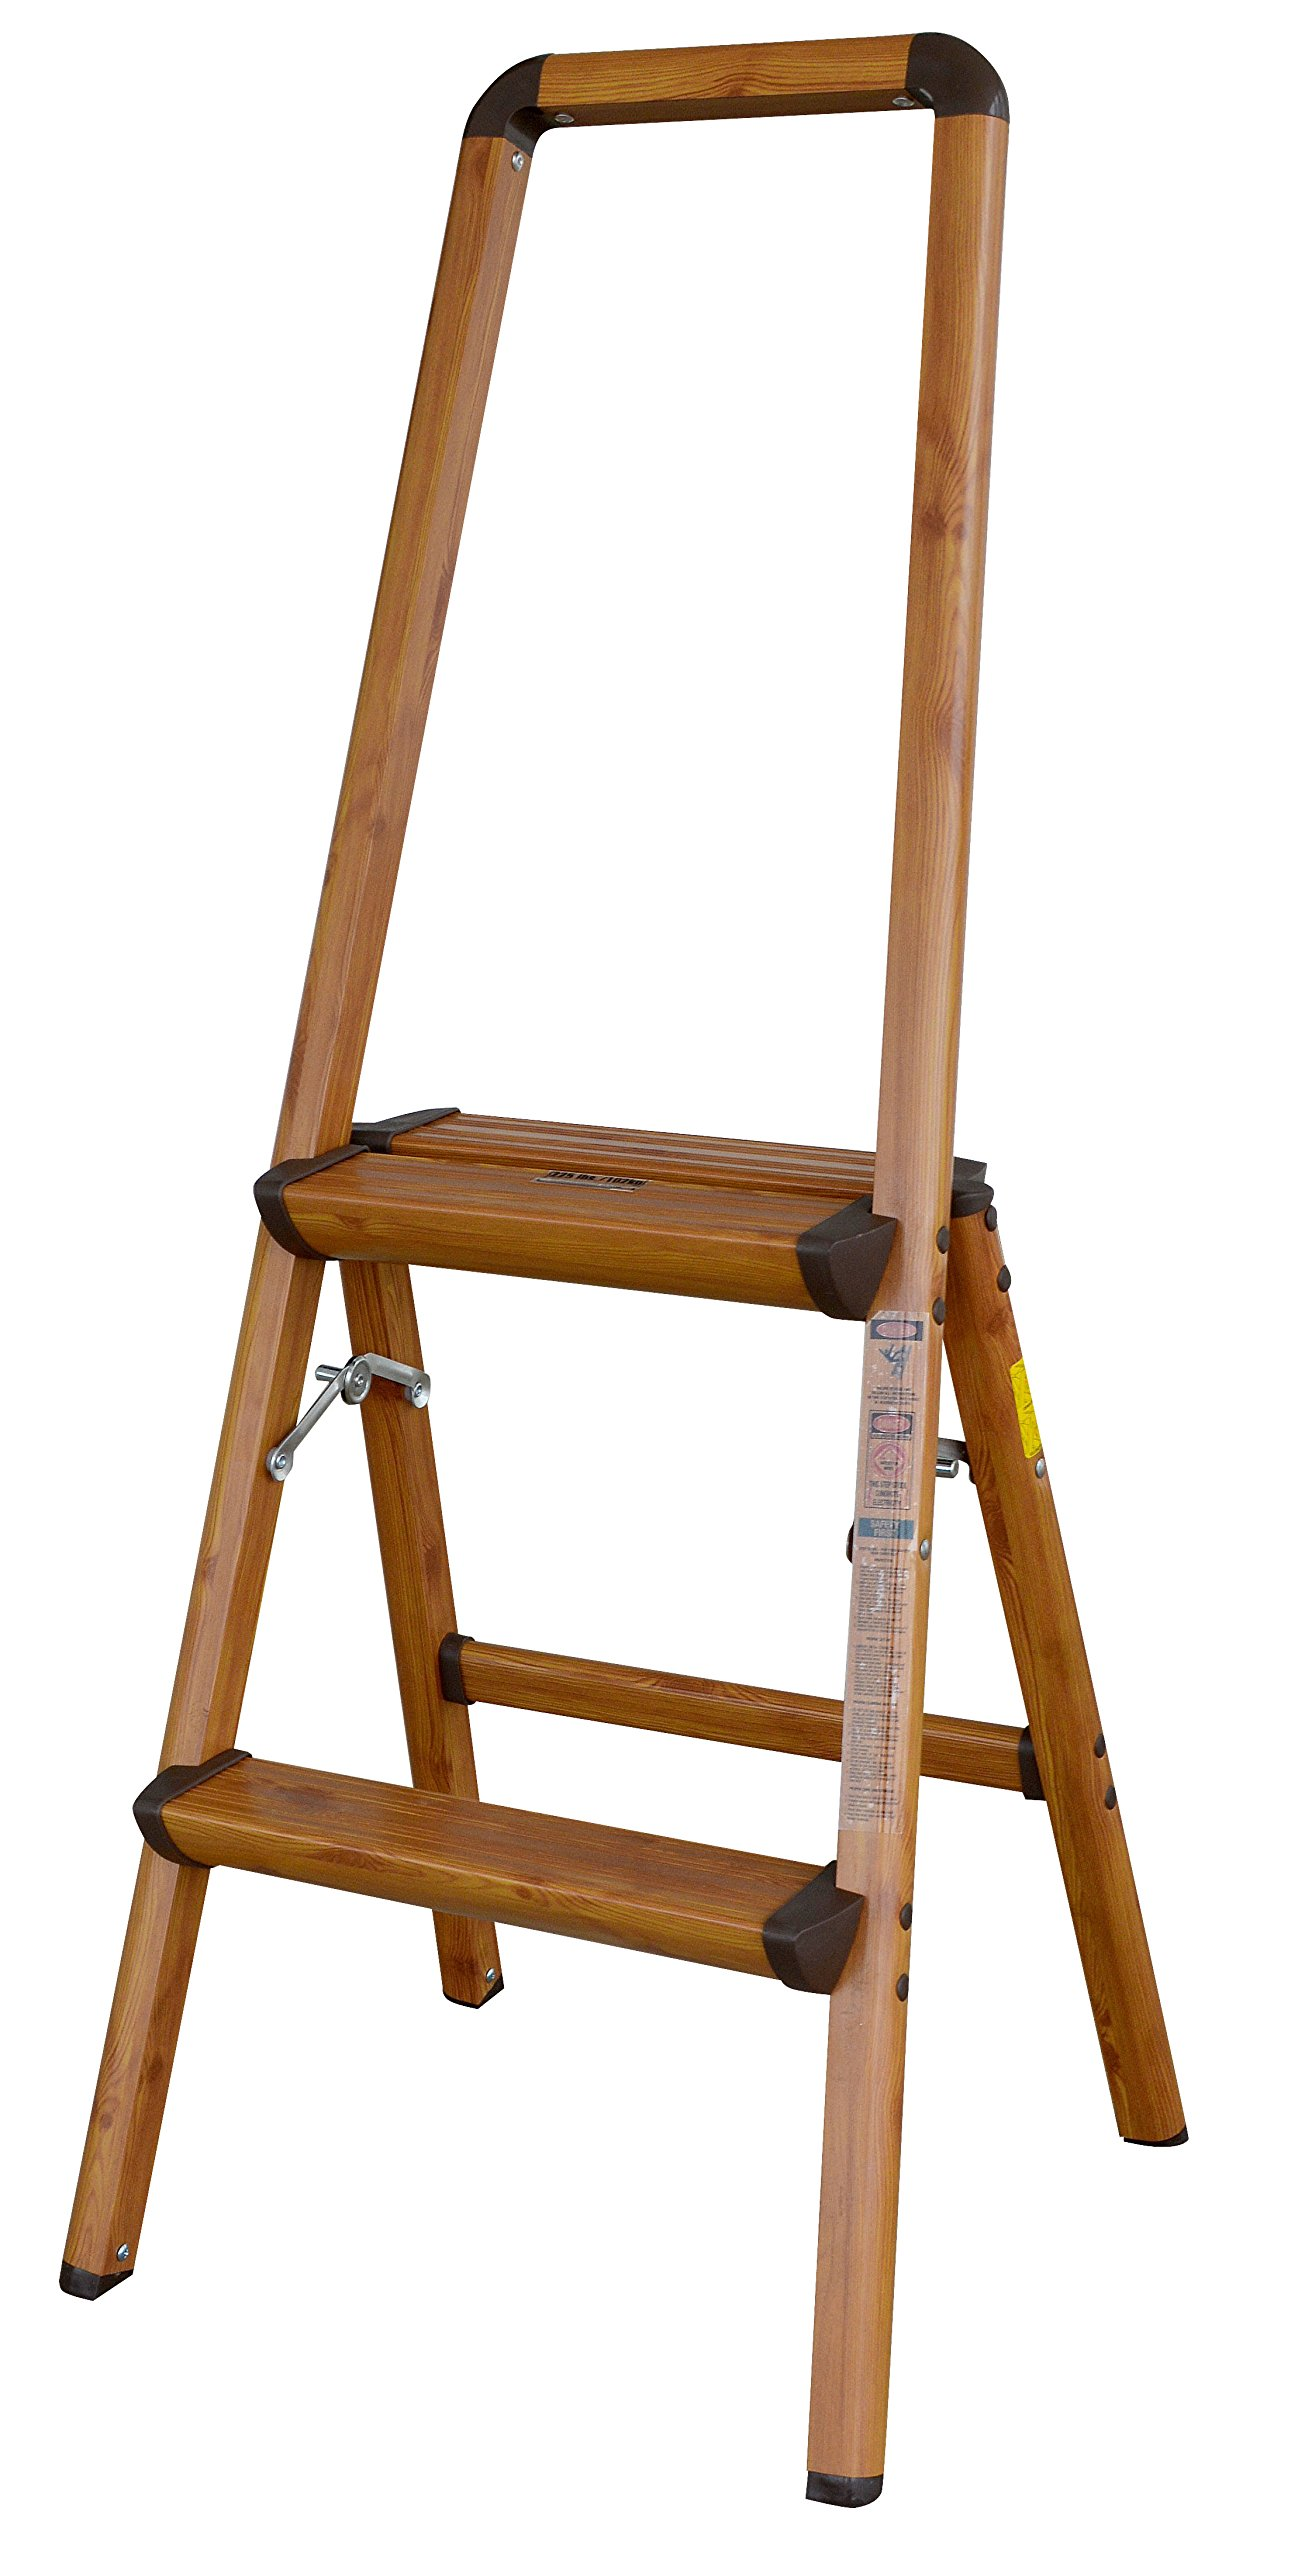 AmeriHome 700367 Lightweight Aluminum Step Ladder, 2 Step, Faux Wood Finish